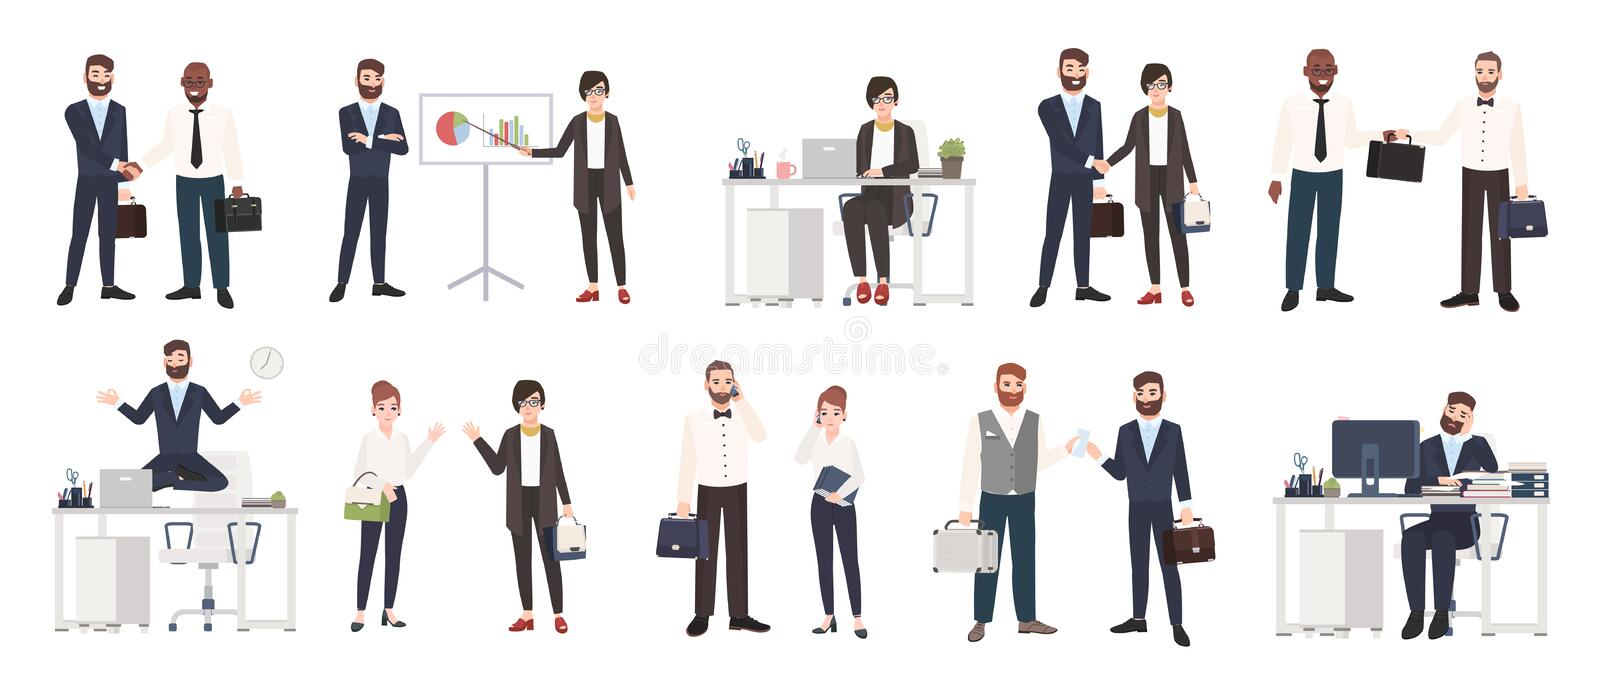 Big collection of business people or office workers dressed in smart clothing in different situations - making deal royalty free illustration